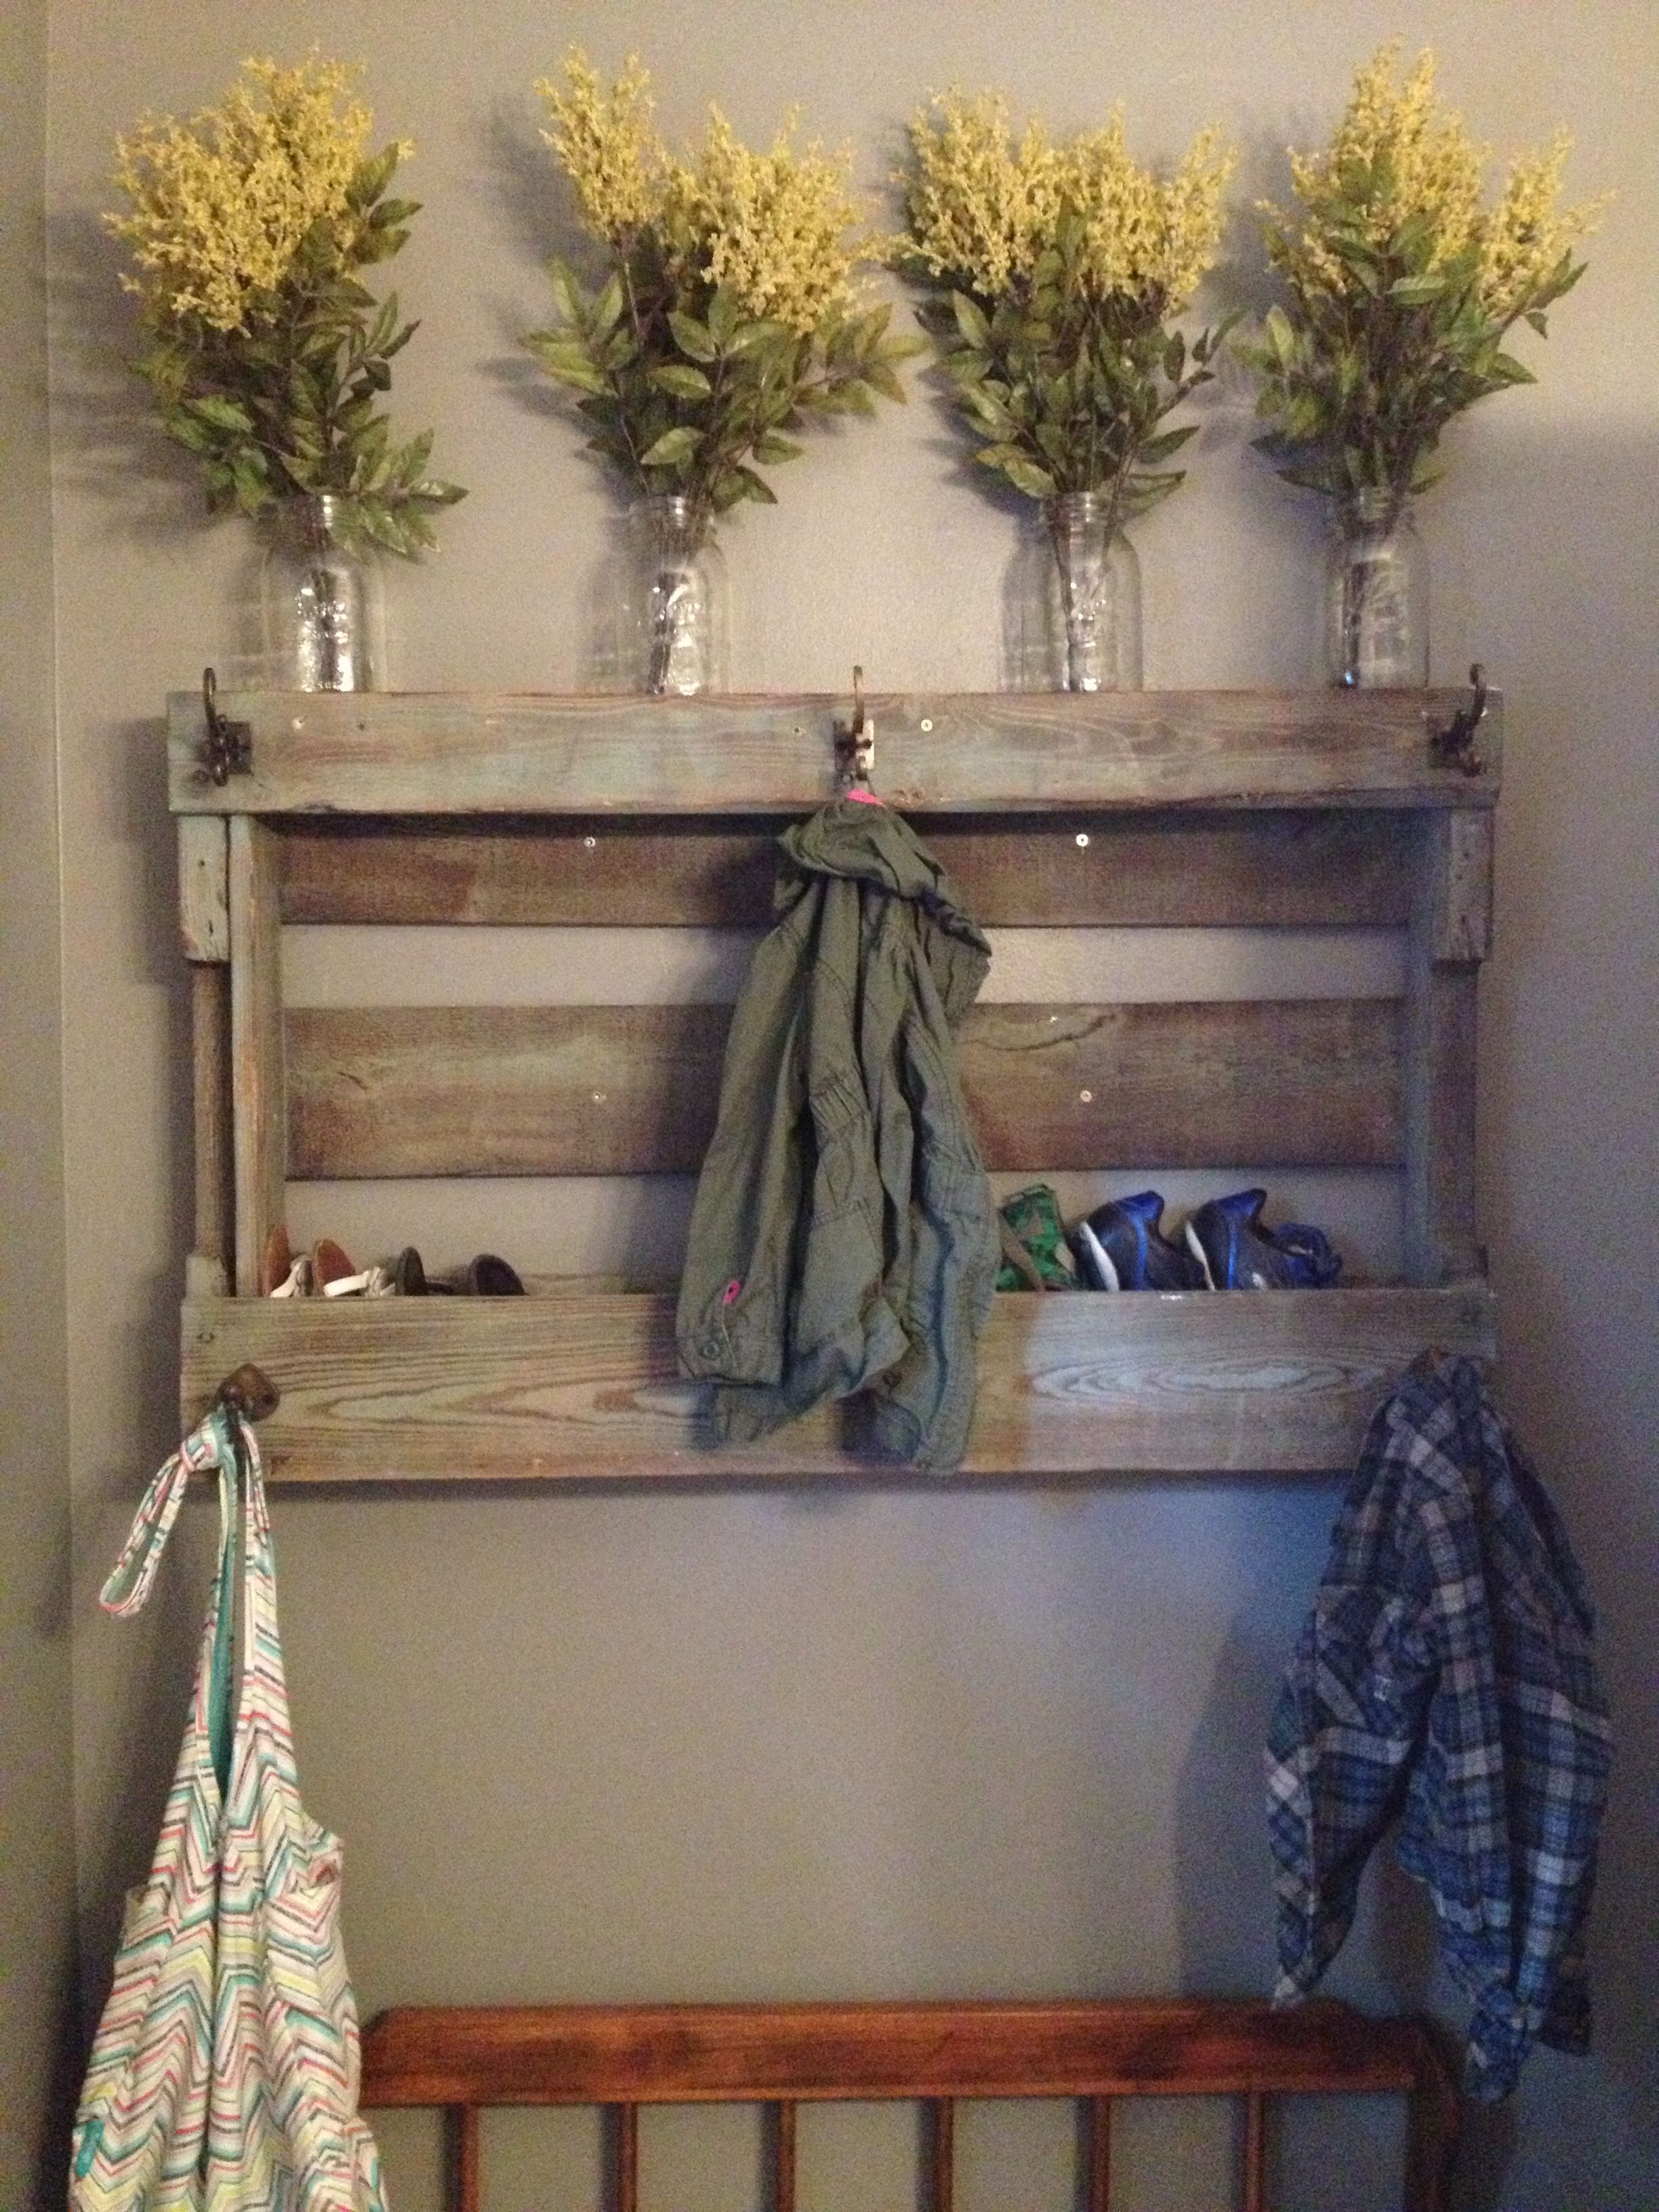 Coat Rack Made From A Pallet With Storage For Little Hats